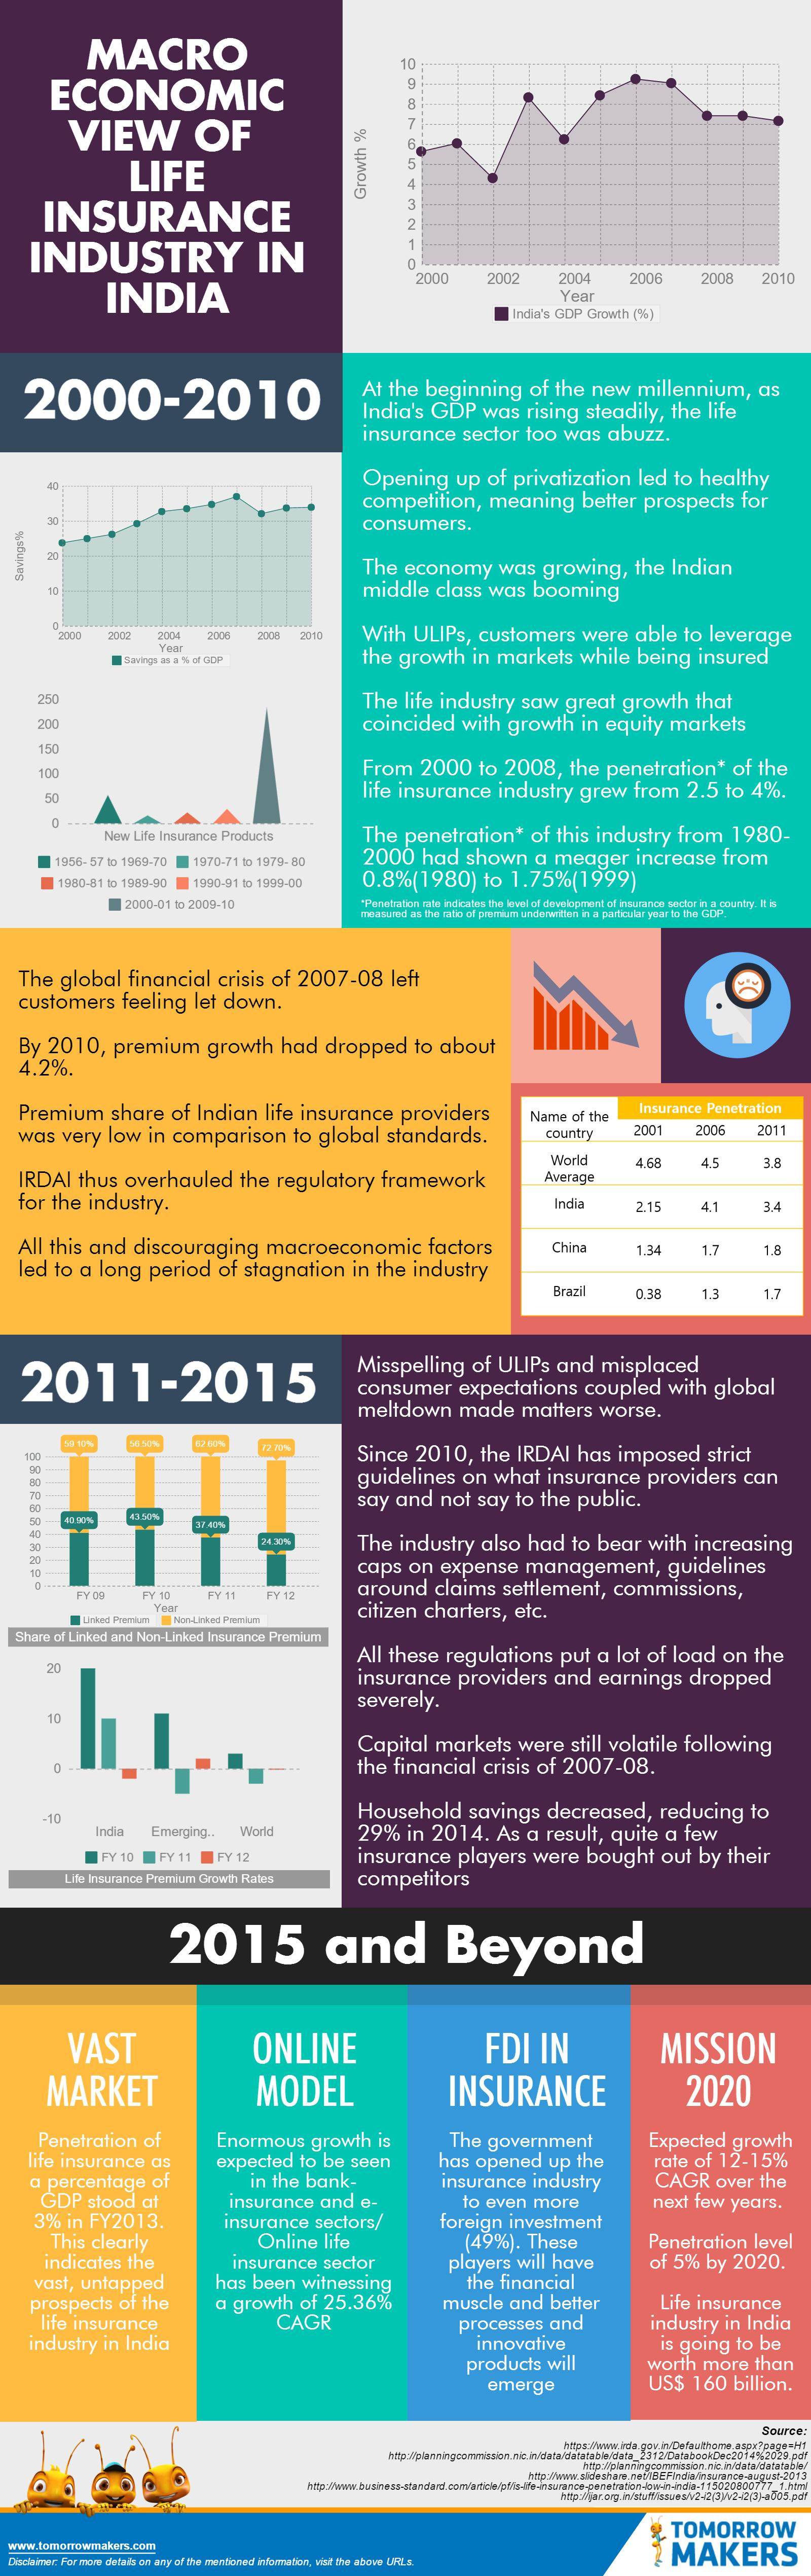 macro-economic-view-of-life-insurance-industry-in-india-infographic